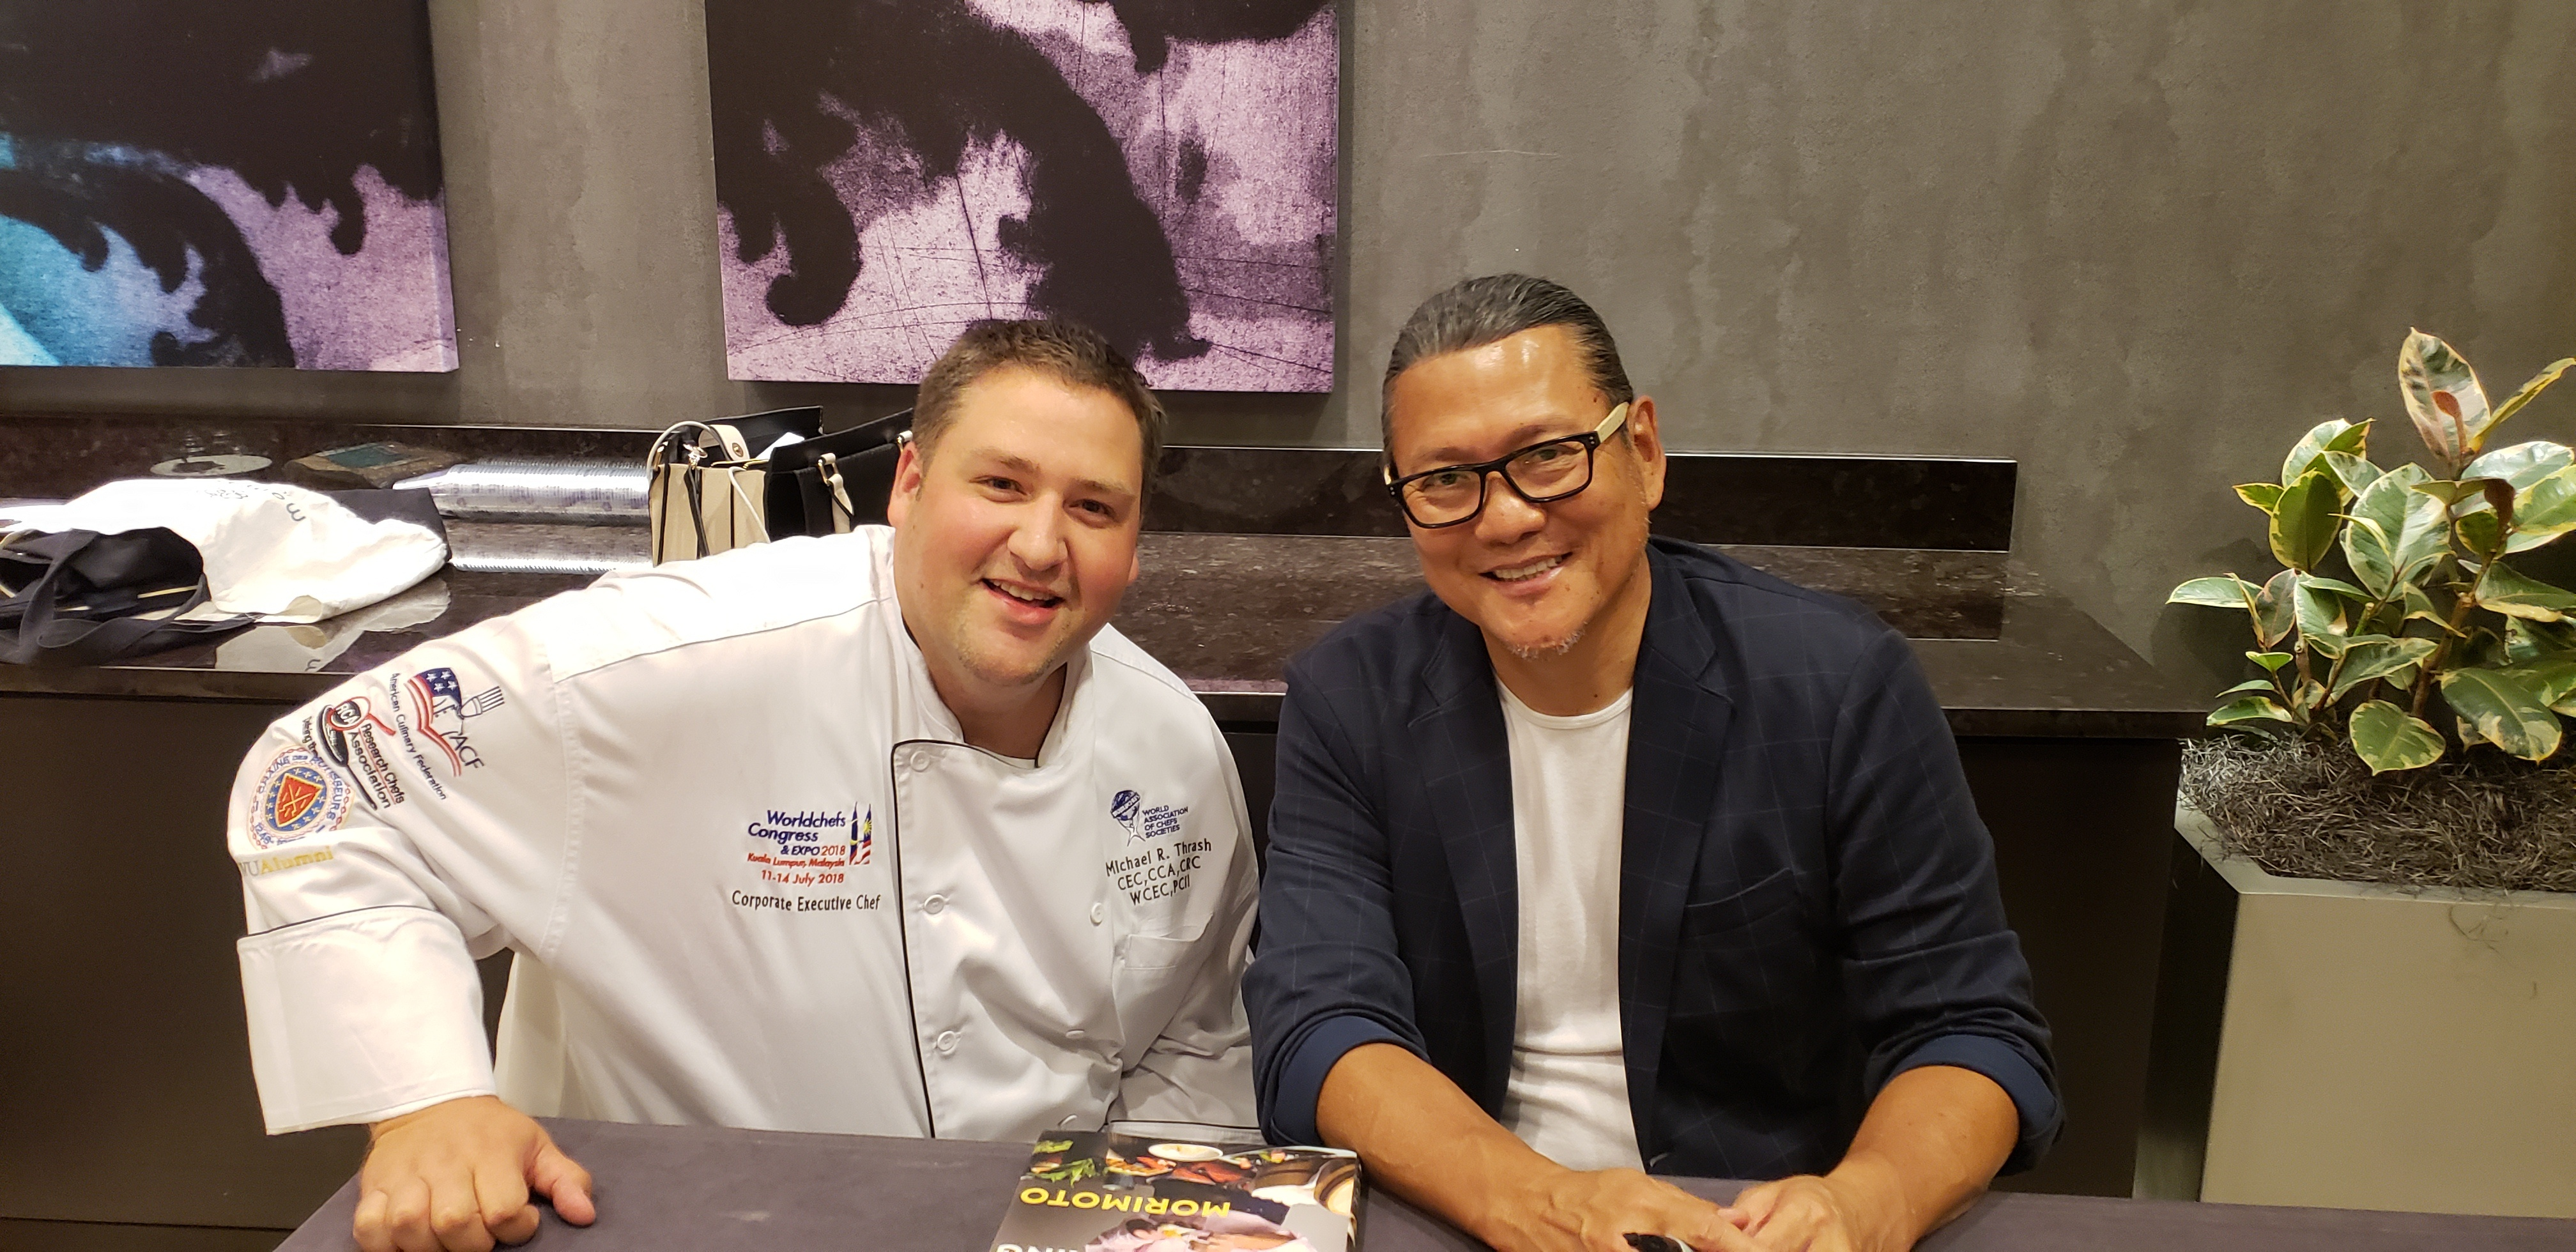 Executive Chef Michael Thrash and Iron Chef Morimoto